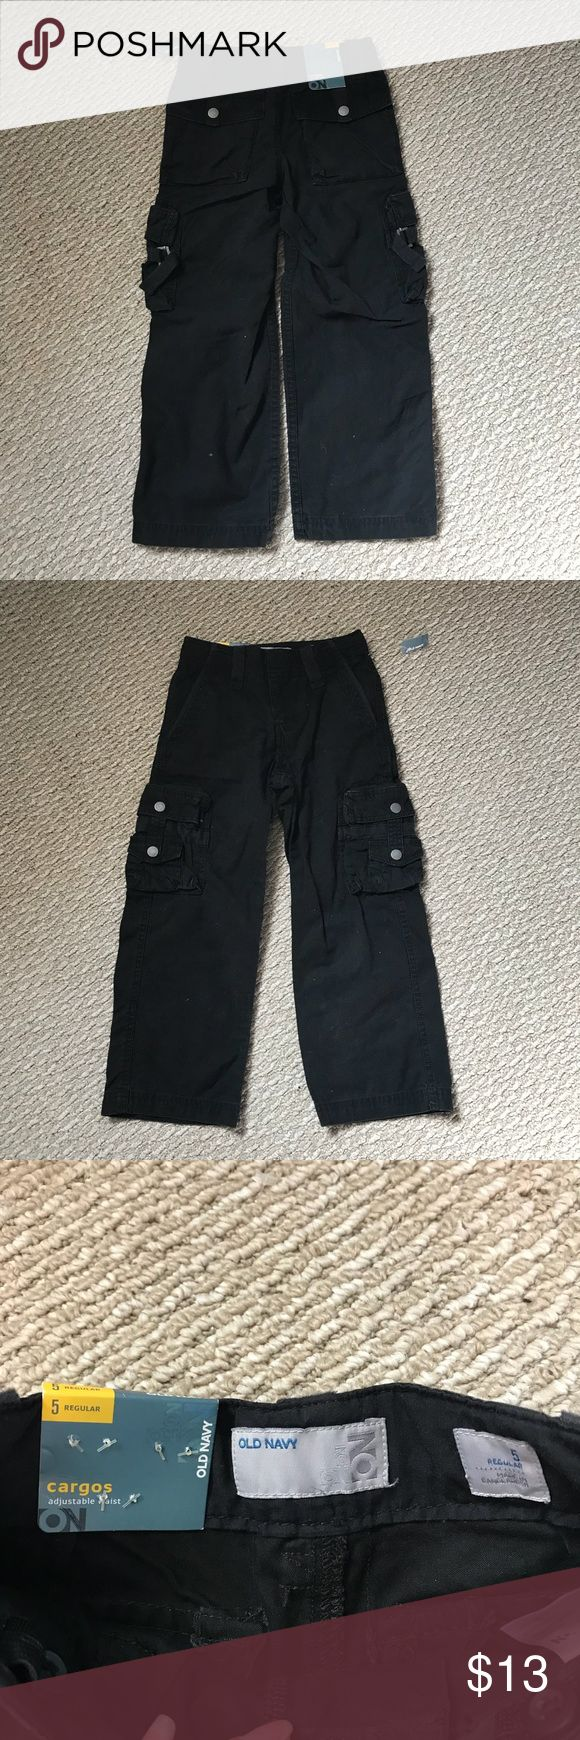 NWT 5T Old Navy cargo pants Brand new with the tag Cargo Pants Sz 5T It's perfect for winter  Has a lot Pocket Old Navy Bottoms Casual